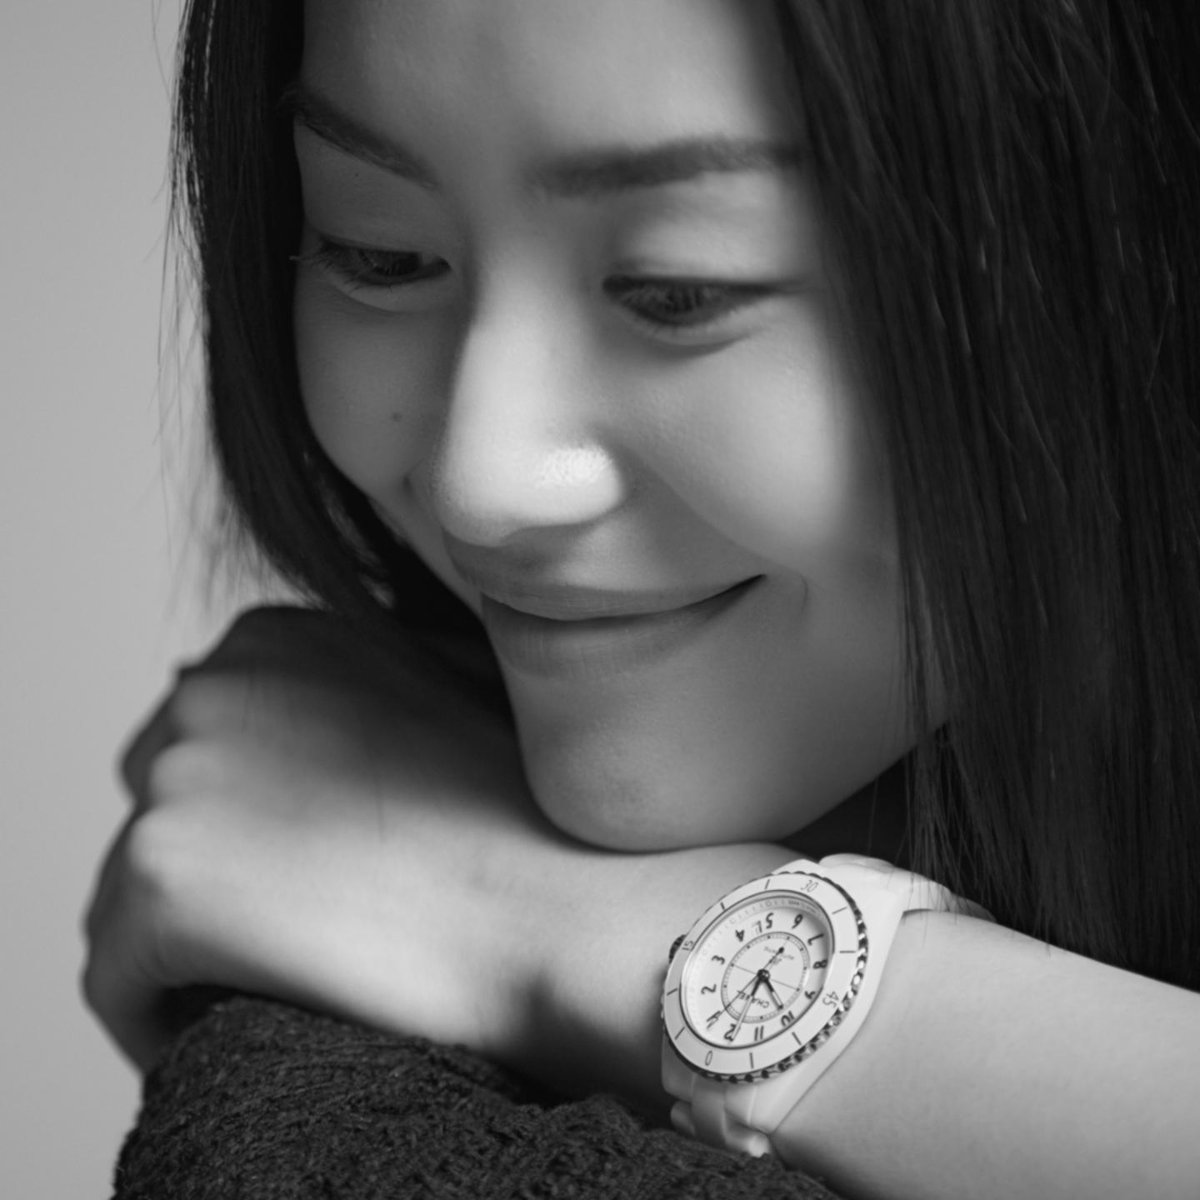 THE NEW J12. IT'S ALL ABOUT SECONDS.15 seconds with Liu Wen, including a decisive one.Discover more on http://chanel.com/-LiuWen_j12 #TheNewJ12 #CHANELWatches #ItsAllAboutSeconds